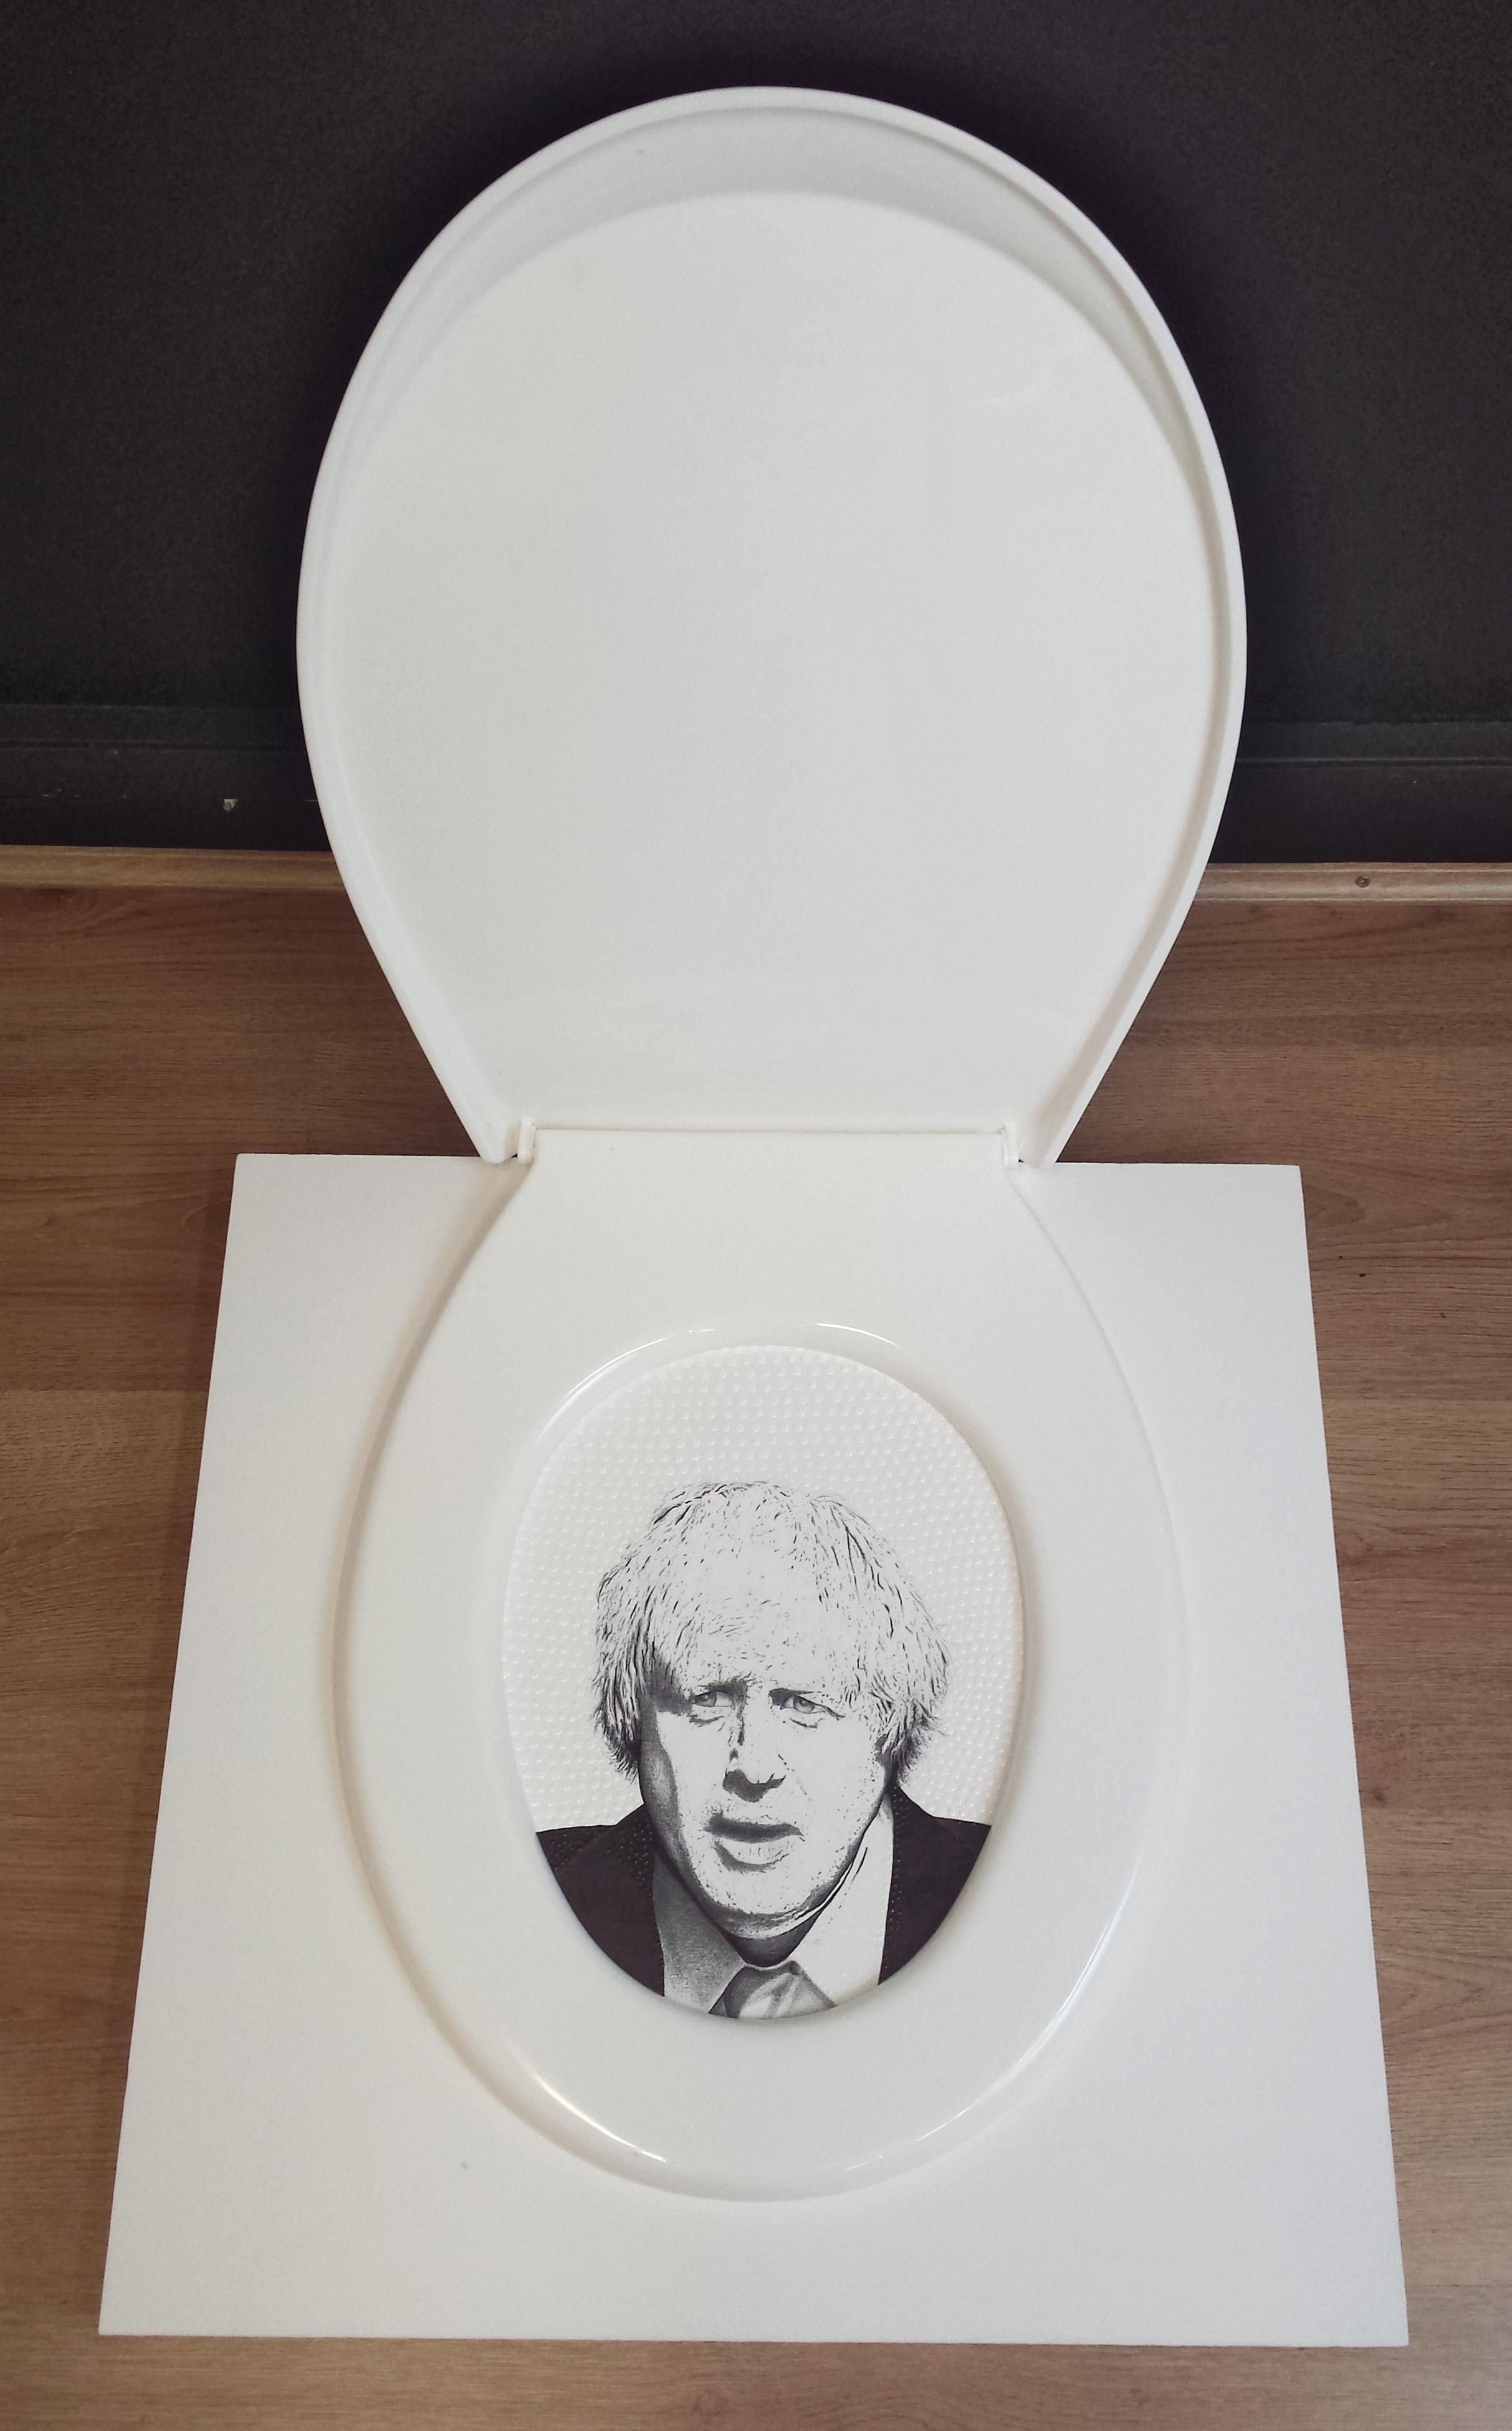 Flush This Out, Mixed media, ink, pencil on wood panel, framed with a toilet seat.